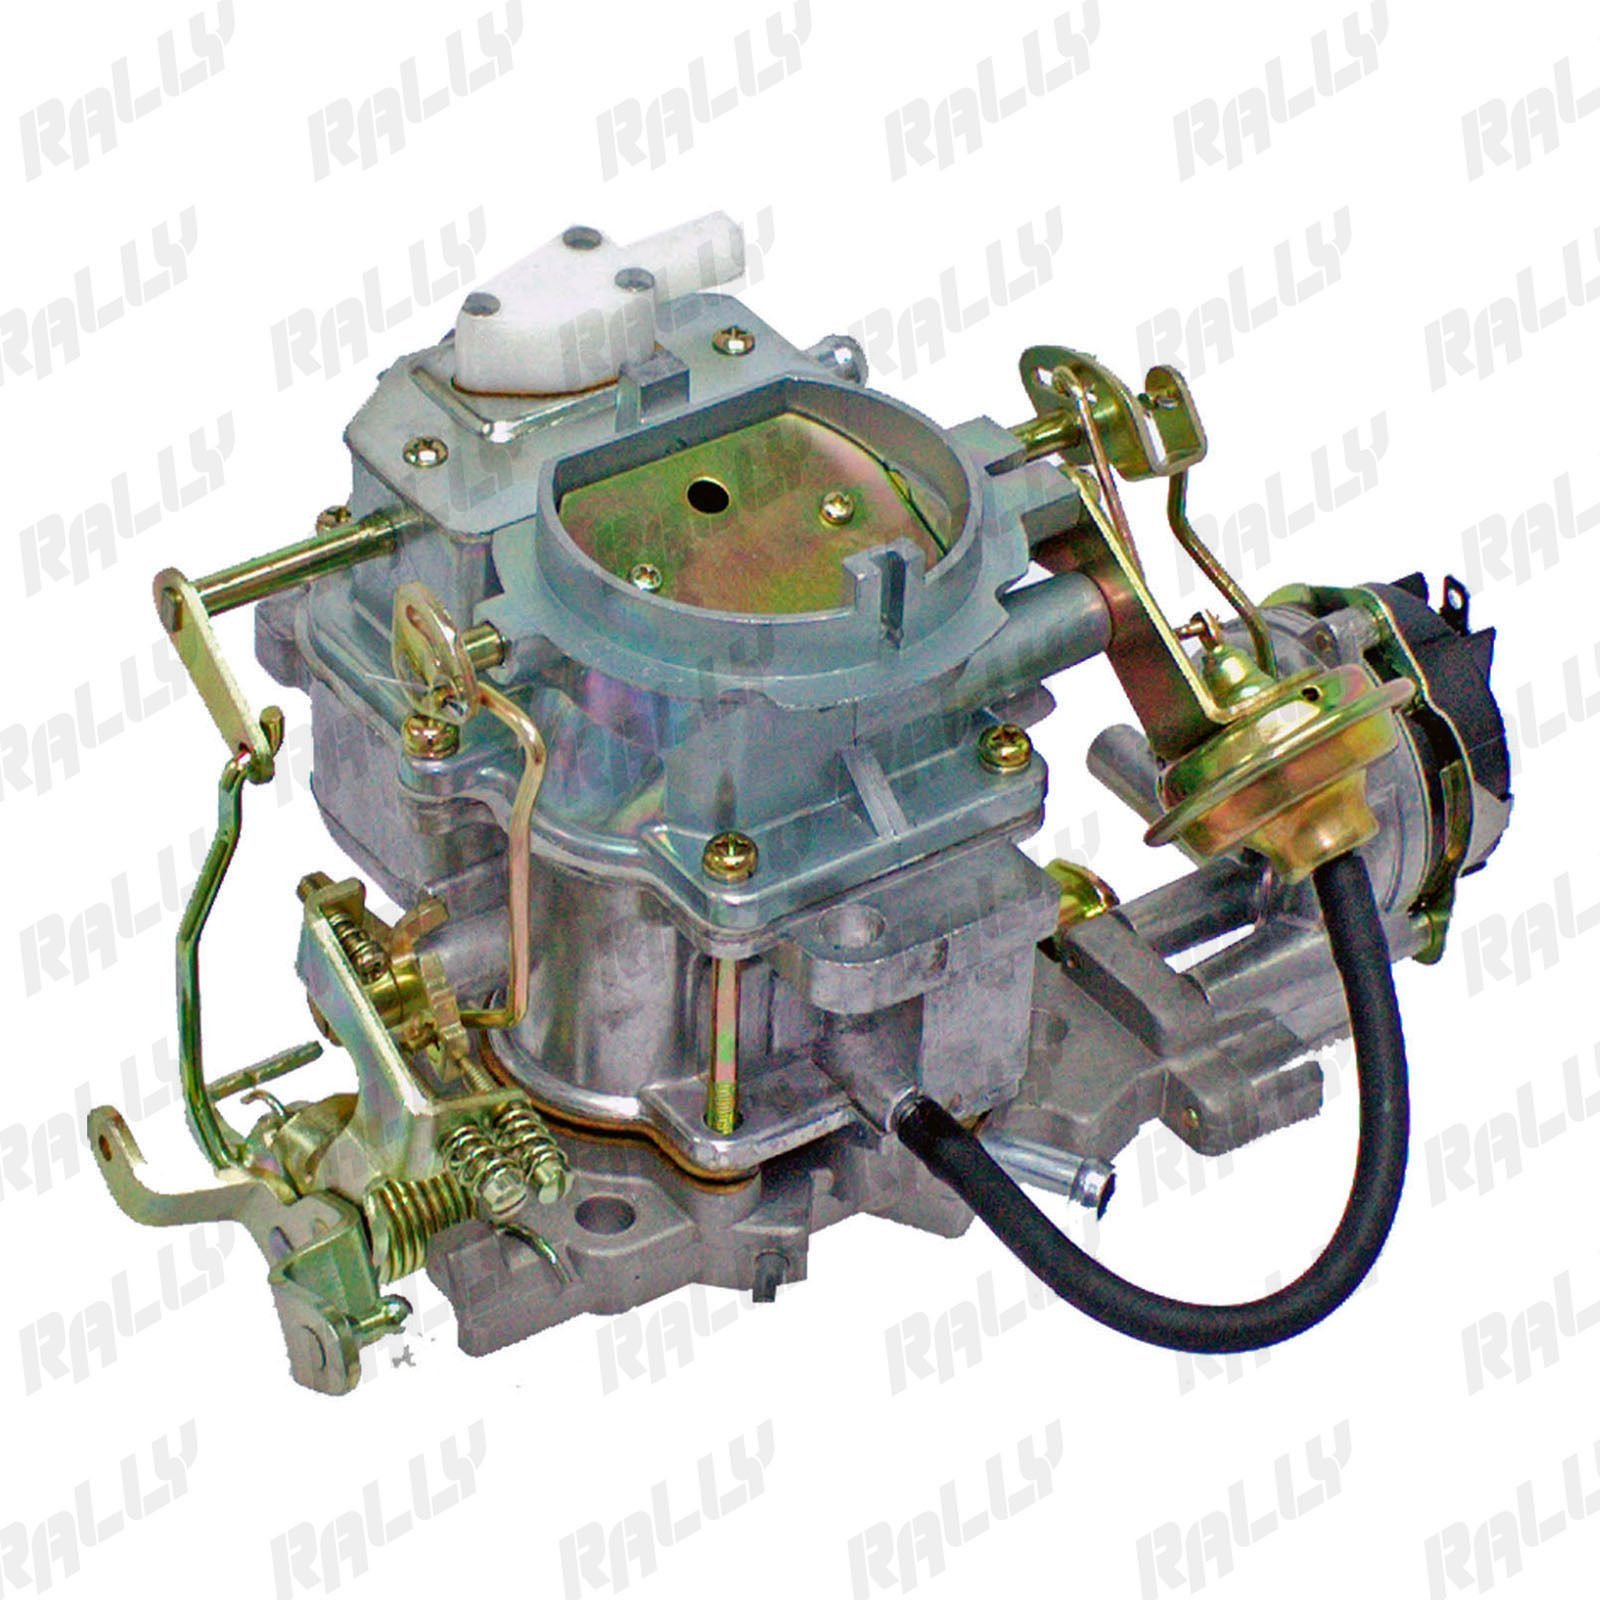 159 CARBURETOR TYPE CARTER JEEP WAGONEER CJ5 CJ7 2 BARREL 6CYL WRANGLER JM159 by Rally